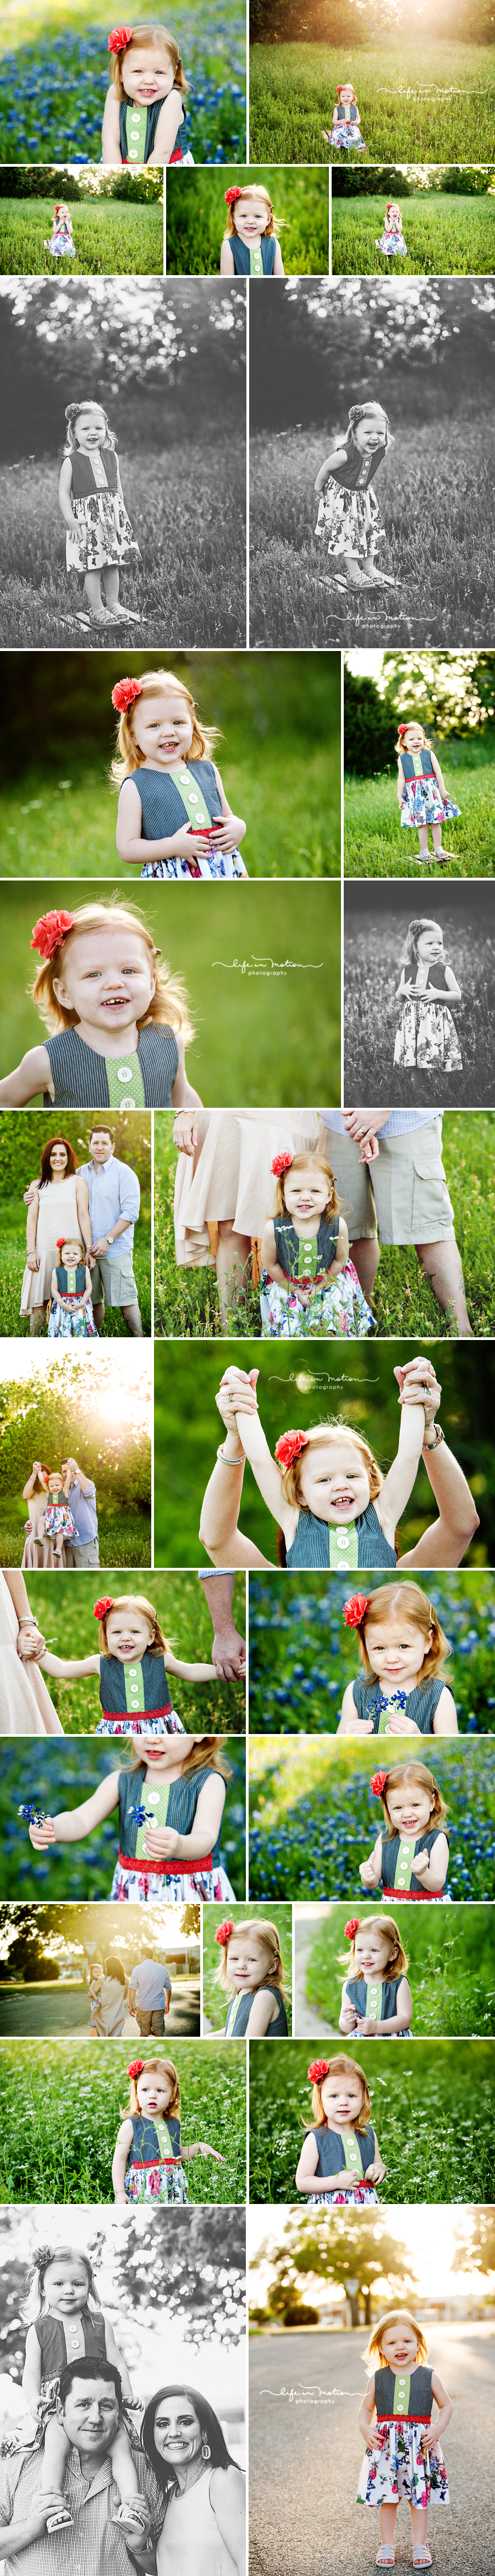 cedar_park_texas_family_bluebonnet_photographer